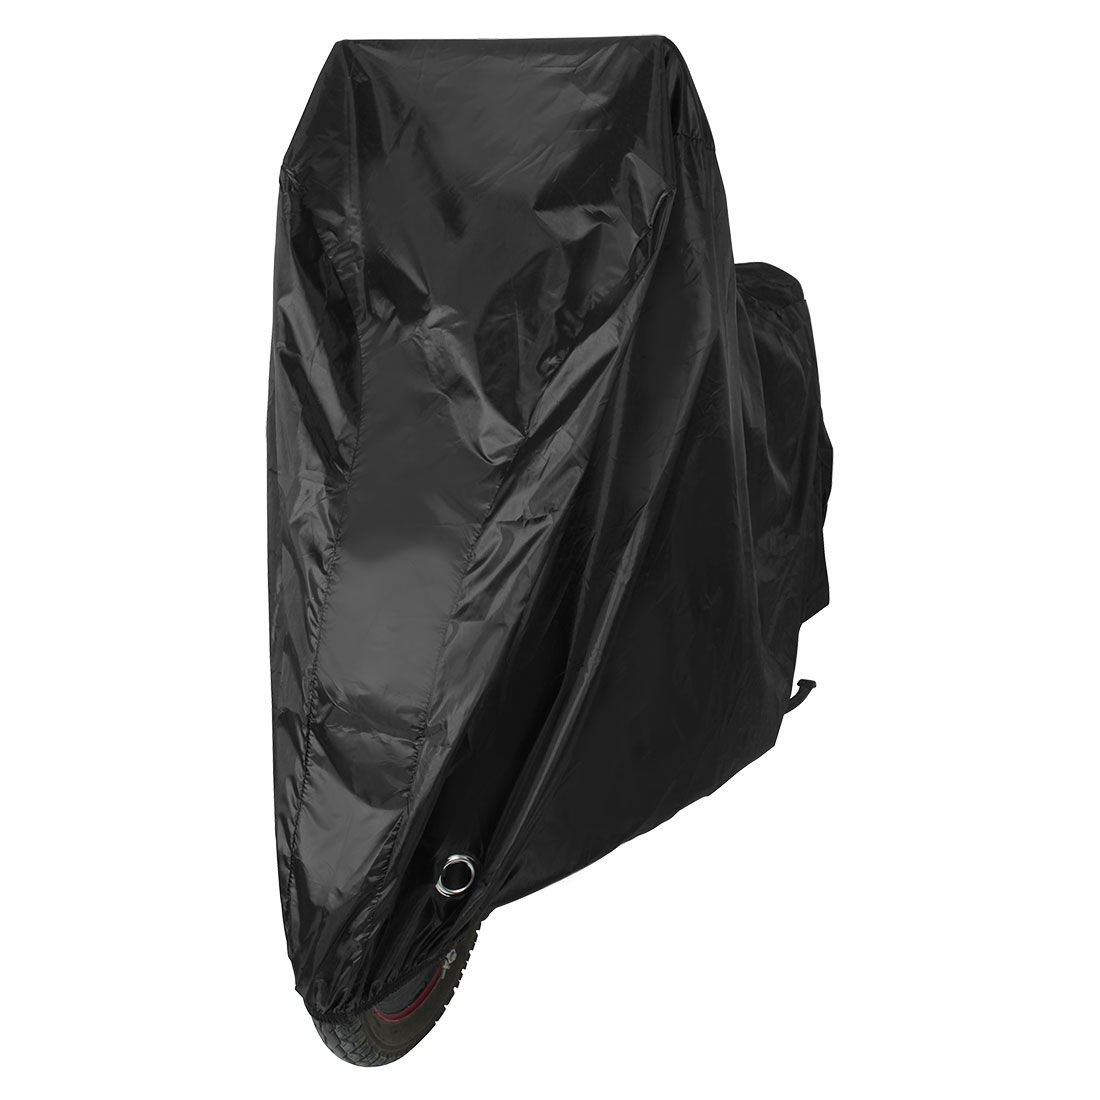 190T Coated Oxford Bike Bicycle Cover Outdoor Waterproof Garage Scooter Protector for 1/2/3 Bikes